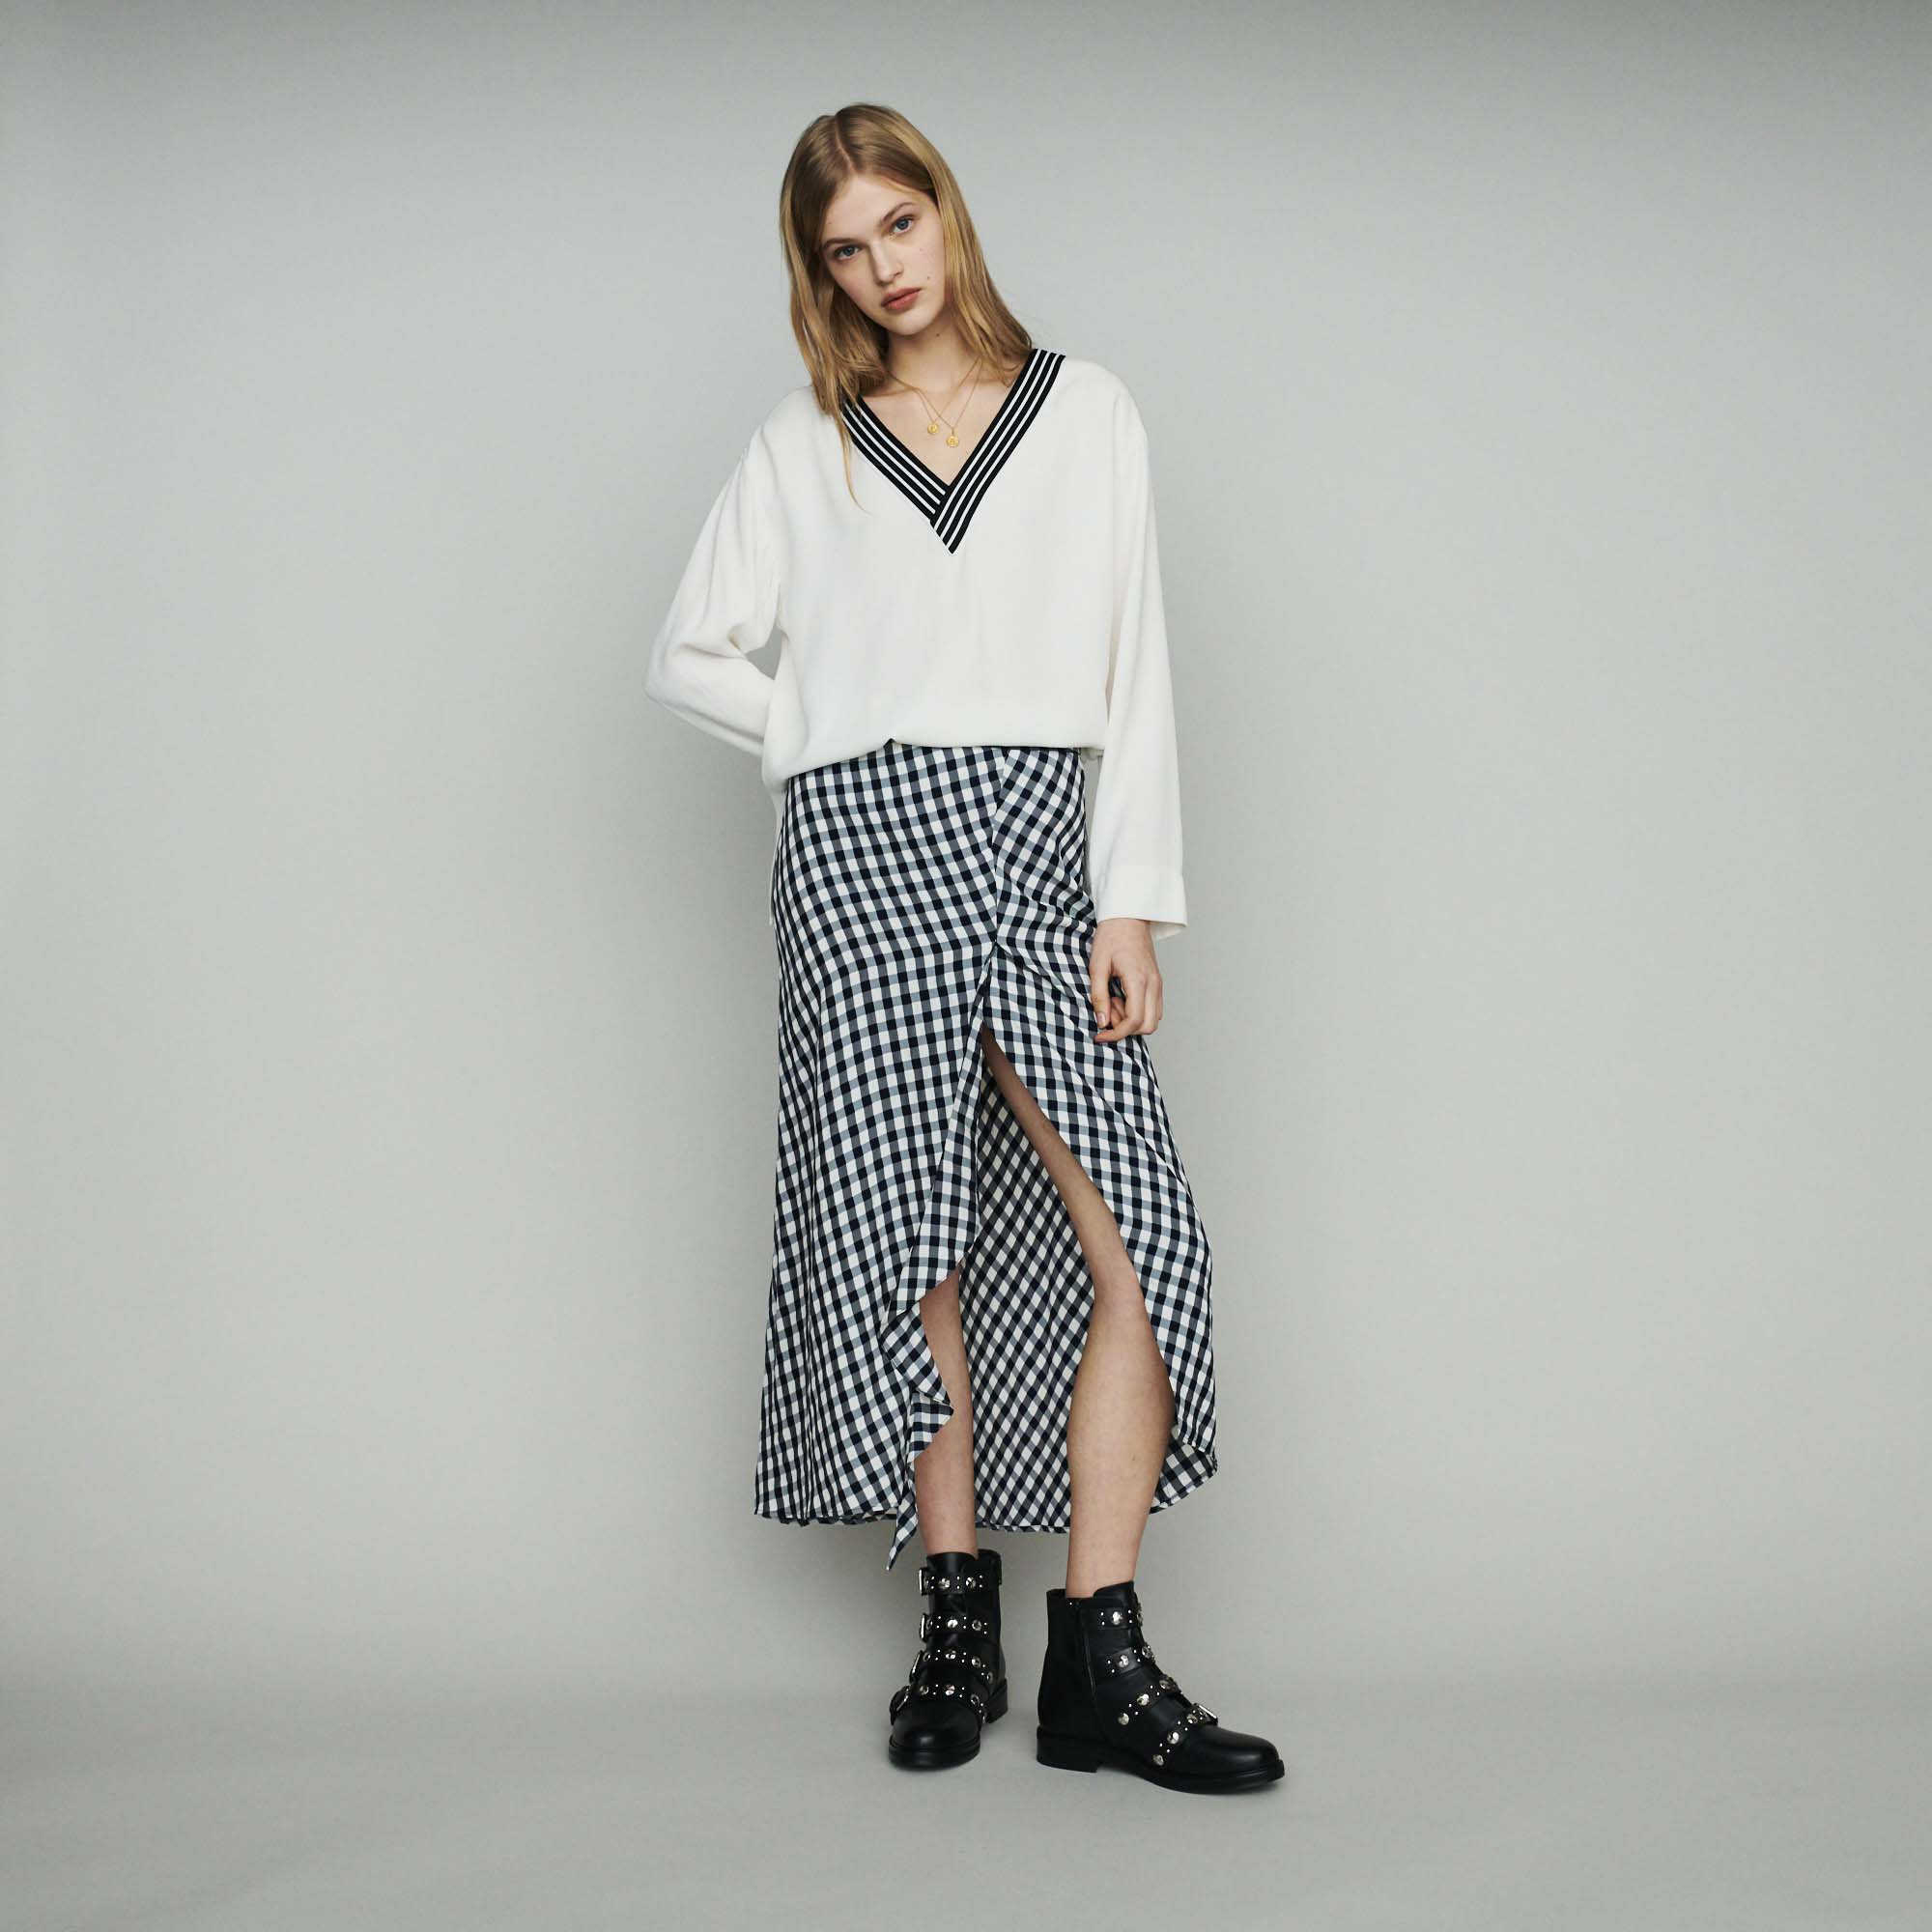 Crepe top with contrasting details - Ecru